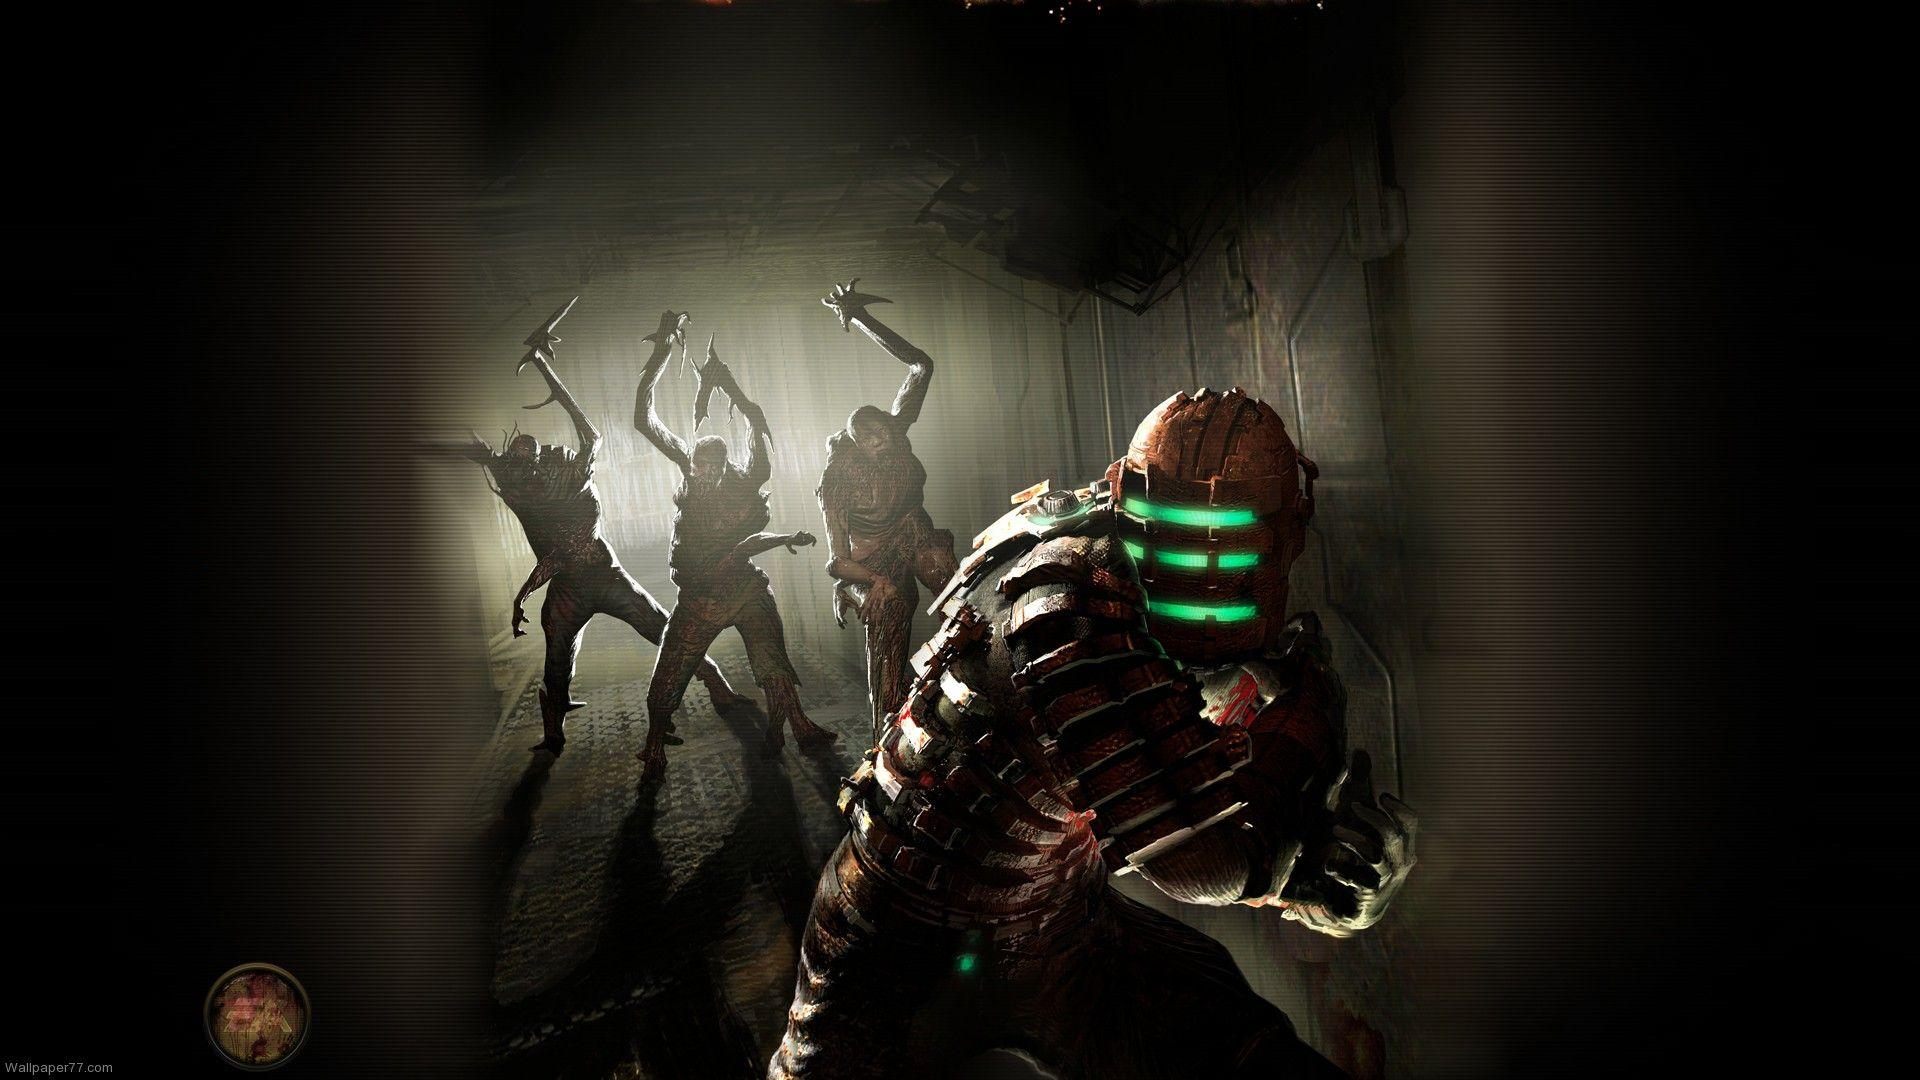 Dead Space 1 Wallpapers HD - Wallpaper Cave